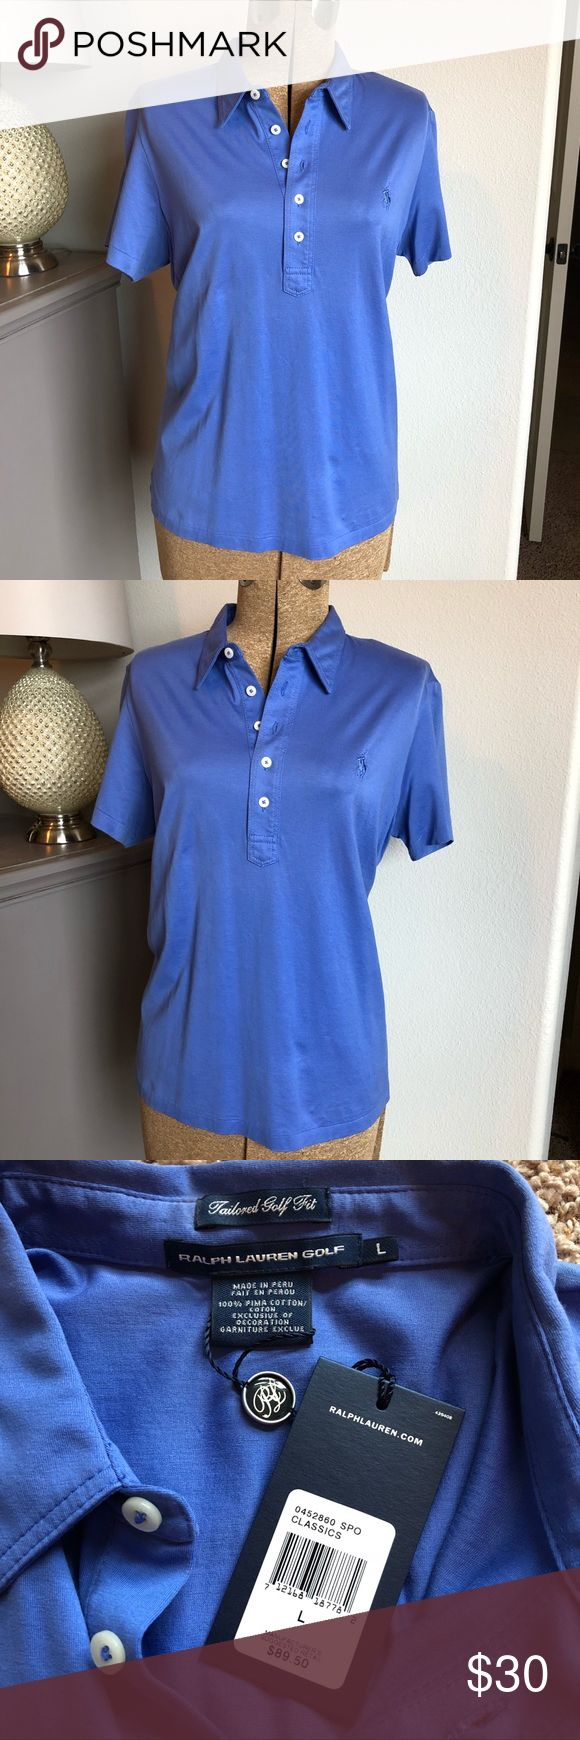 "NWT Women's Ralph Lauren Golf Tailored Fit Polo Pima cotton comfort in a pretty royal blue top. Ralph Lauren Classic Golf Fit Polo Size Large.  Shirt is new with tags in excellent condition and from a smoke free home.  Bust measures approximately 20"" flat Length from nape to bottom hem approximately 25.5""  Please feel free to ask any questions! Ralph Lauren Tops"